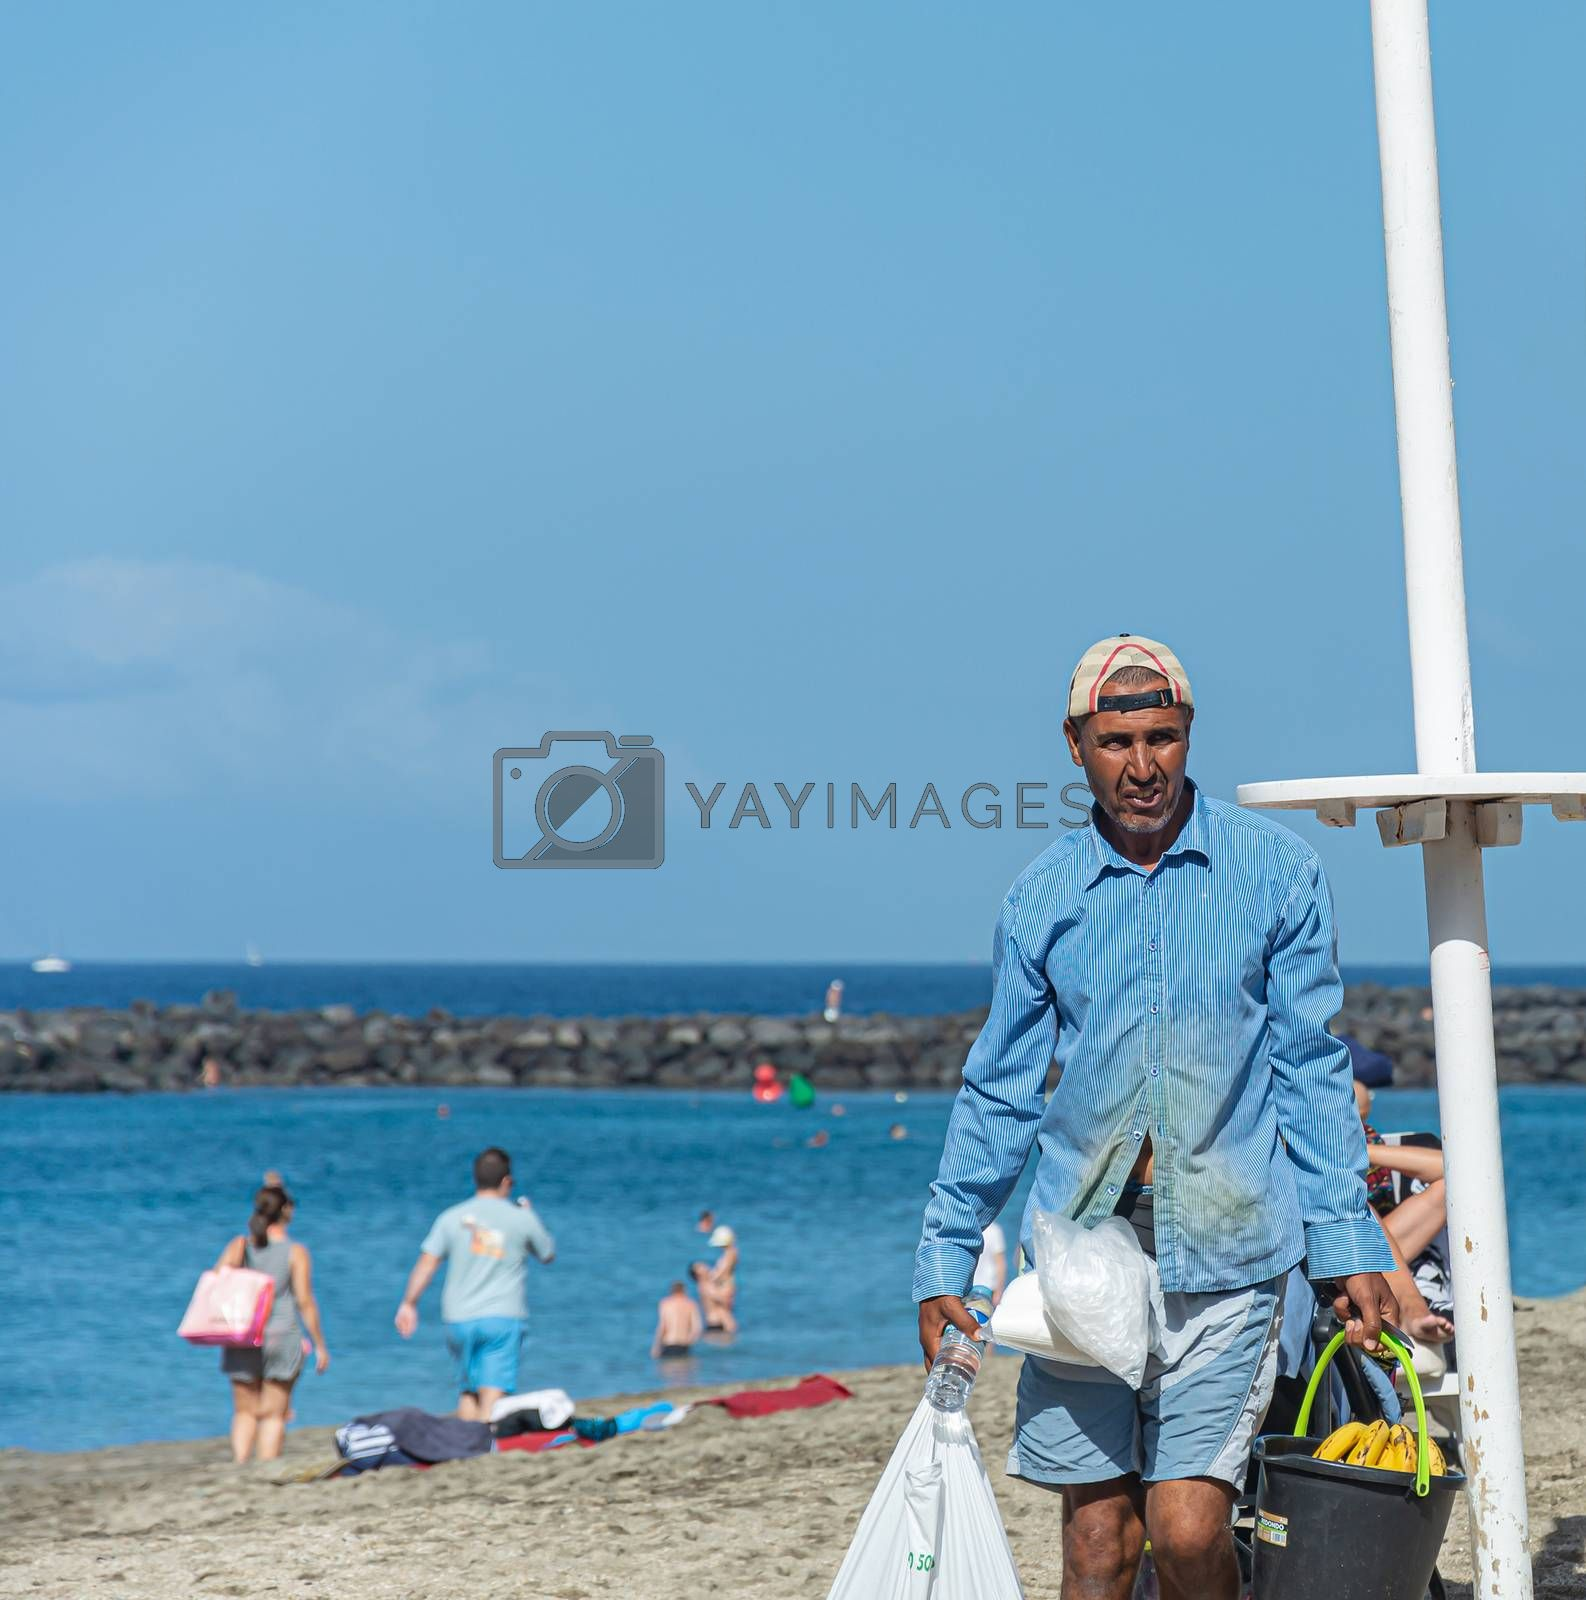 Spain, Tenerife - 09/19/2016: Fruit seller on the beach. Stock photography